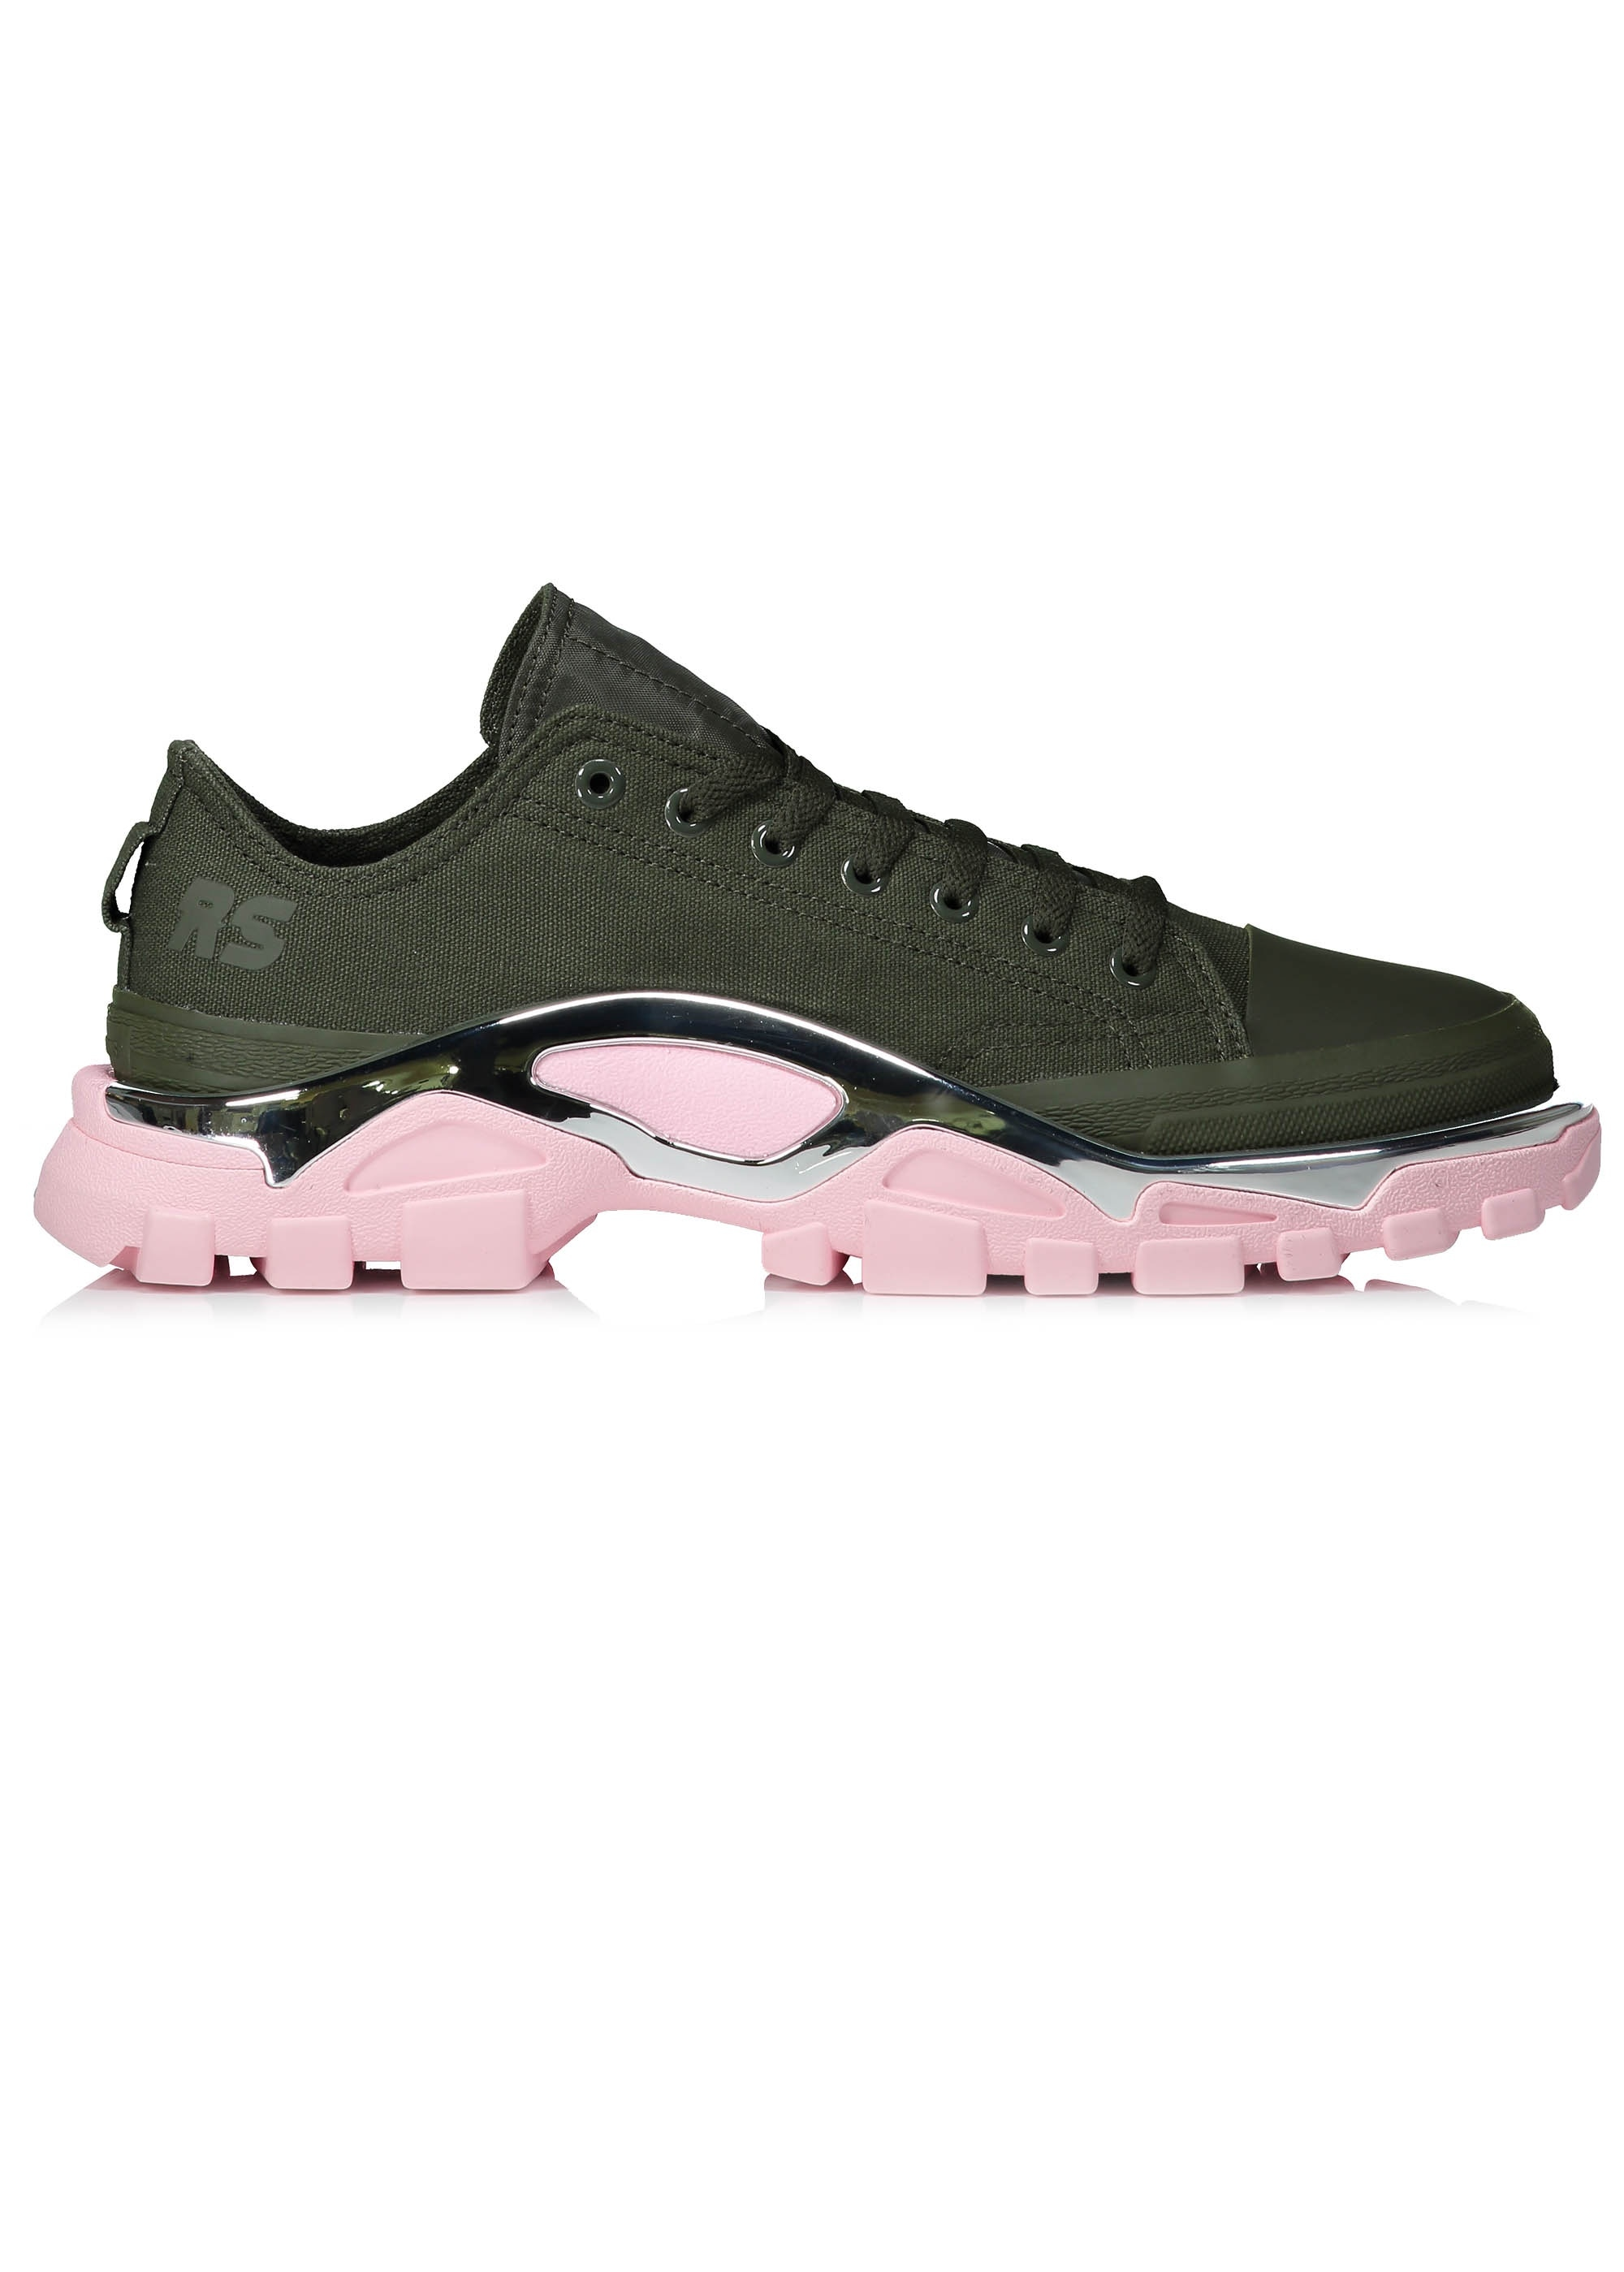 ed56fca7789 adidas by Raf Simons RS Detroit Runner - Green   Pink - Trainers ...